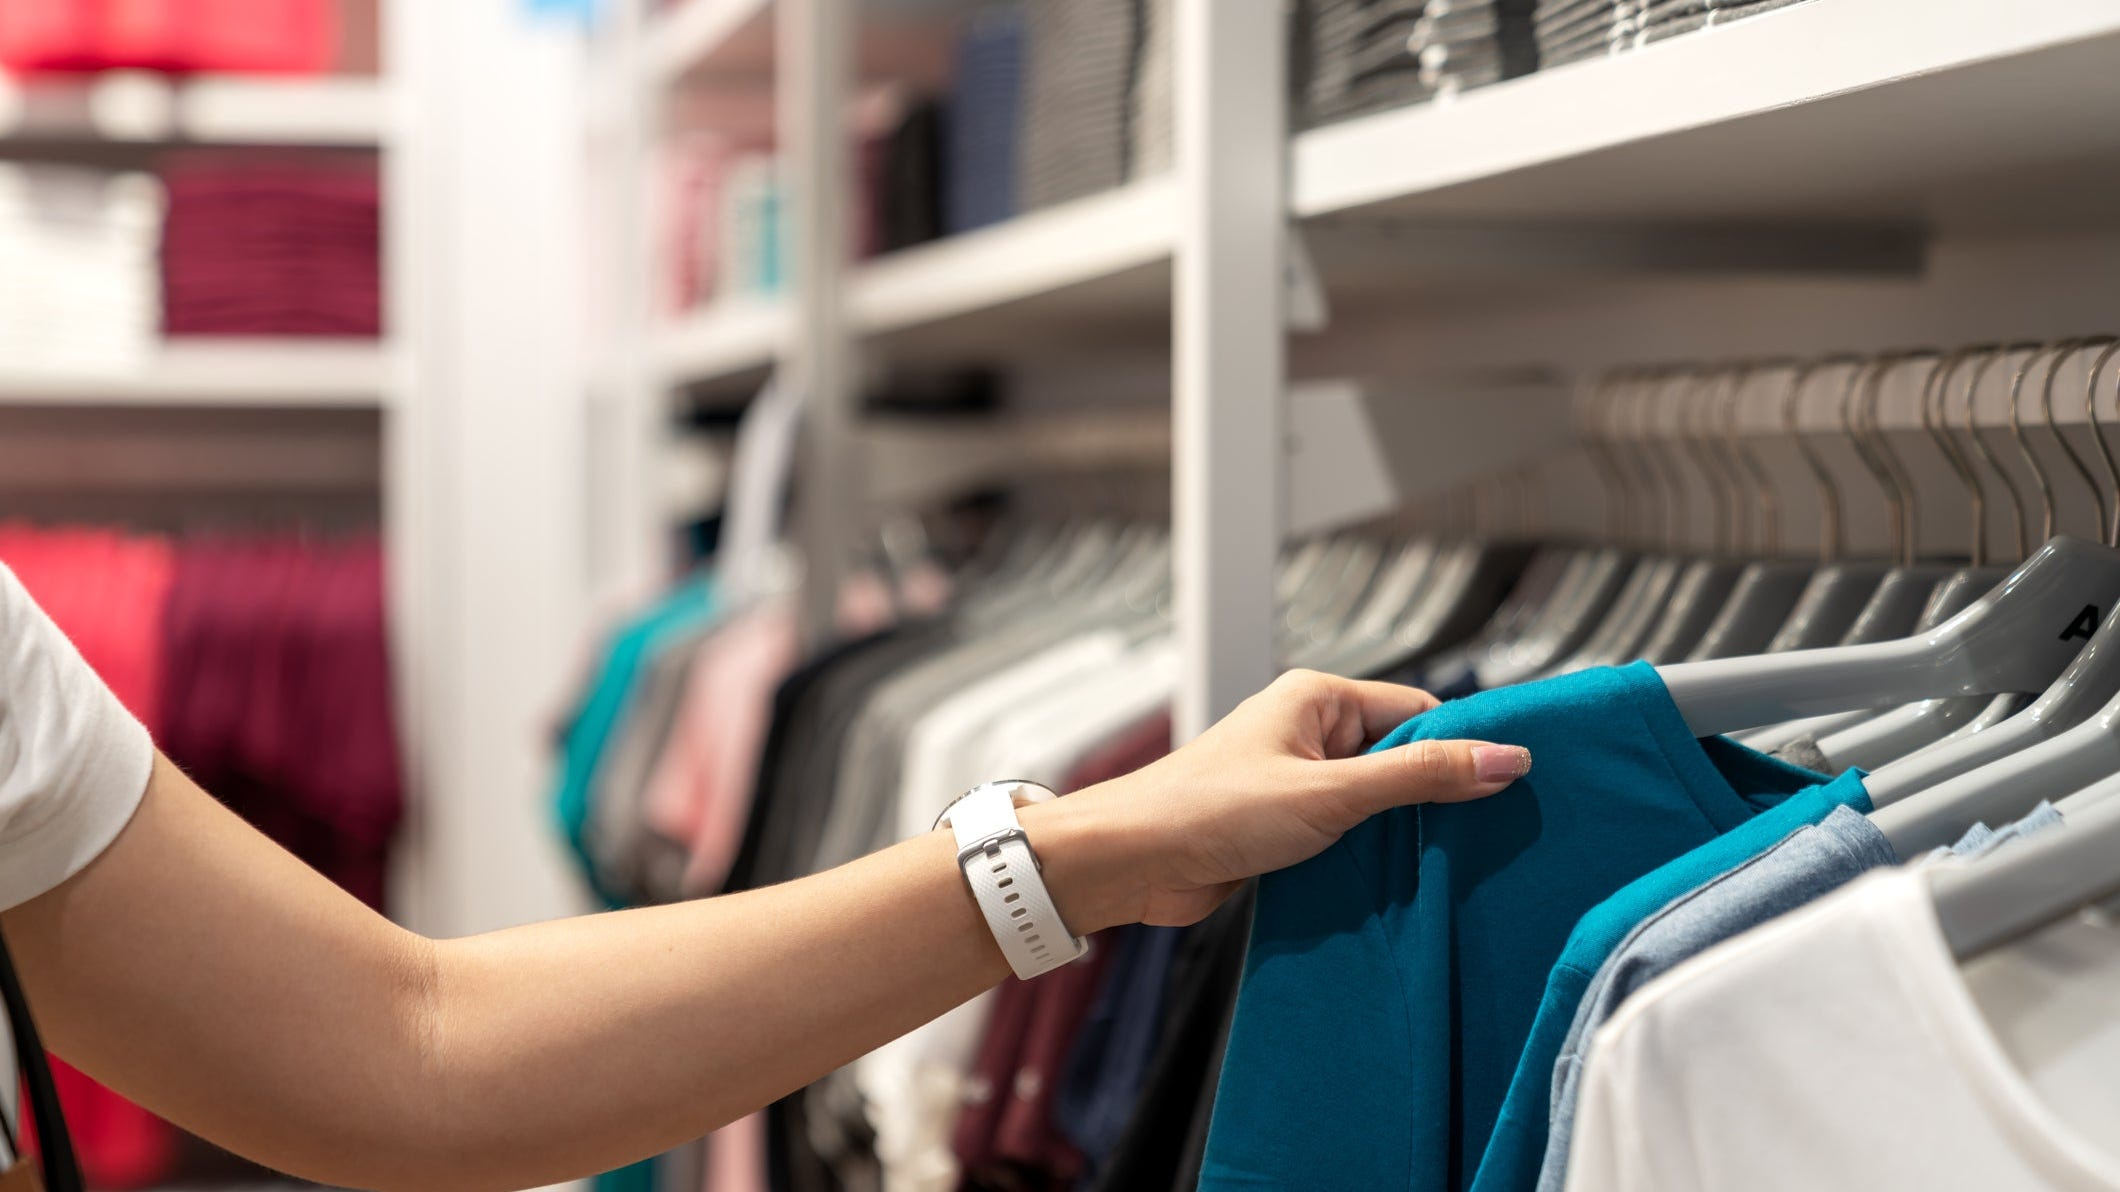 Cyber Monday 2019 sales: Best clothing and fashion deals at